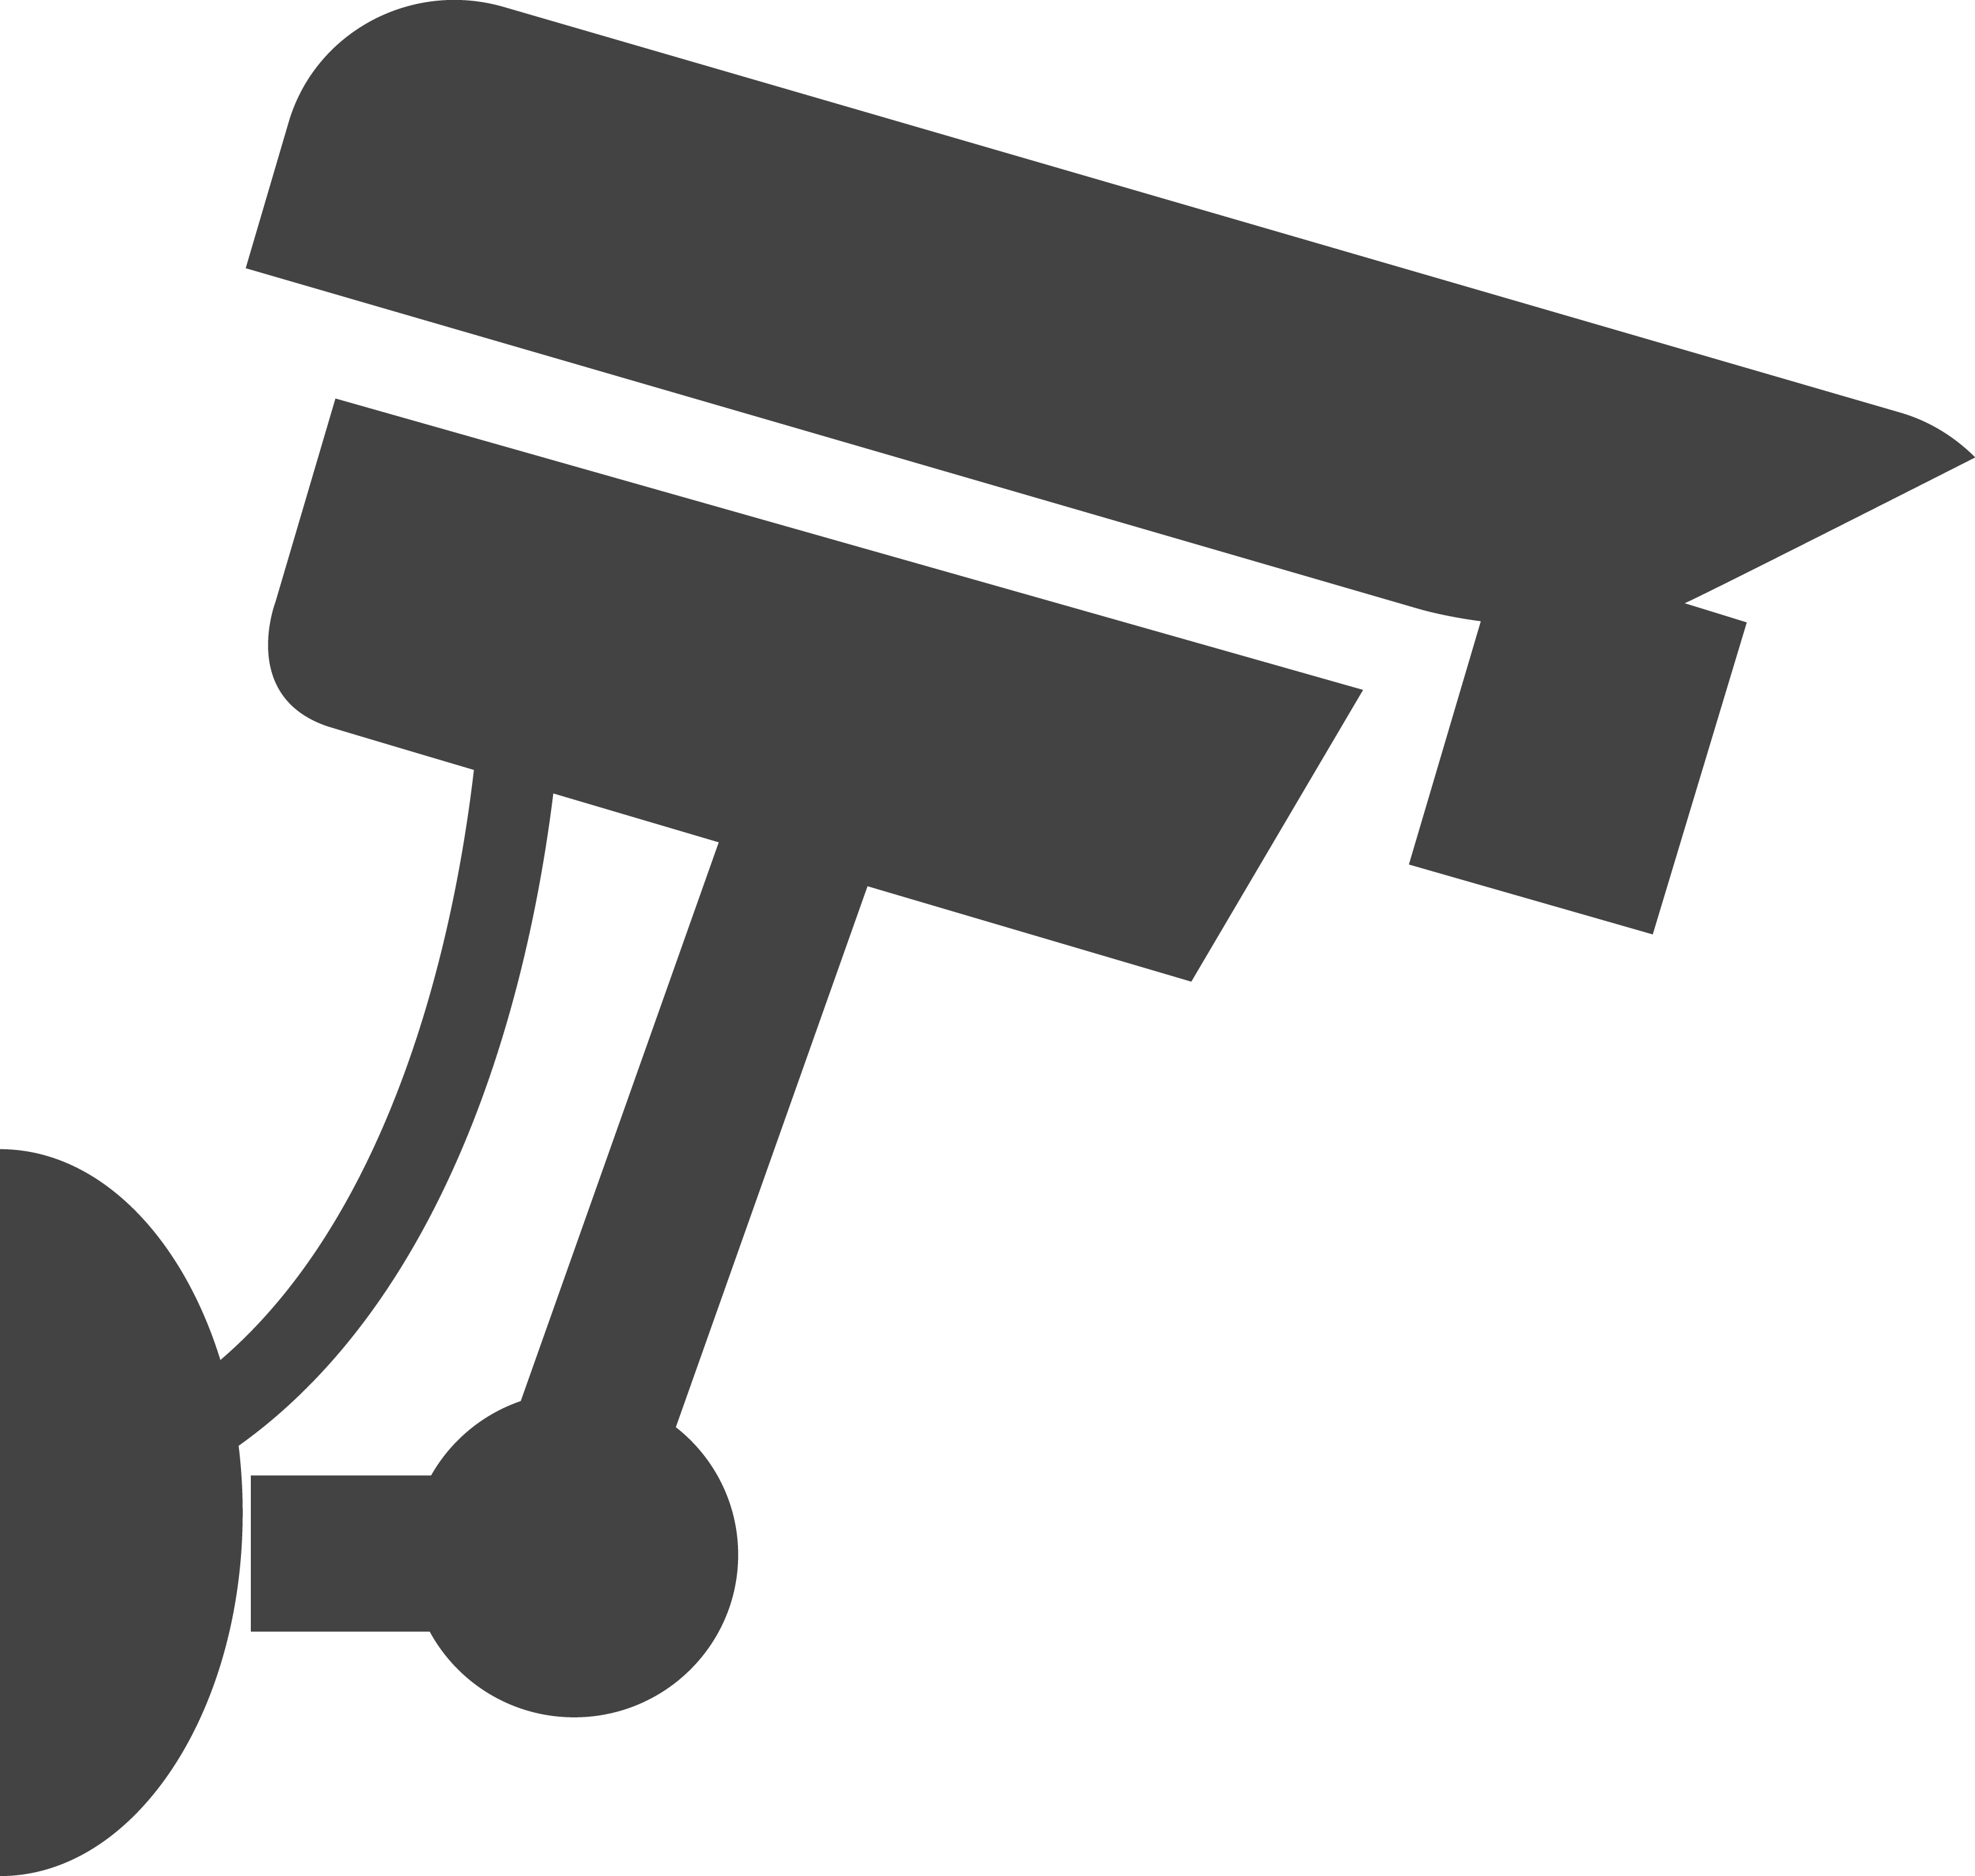 Camera clipart security camera. Systems cctv shnnoogle